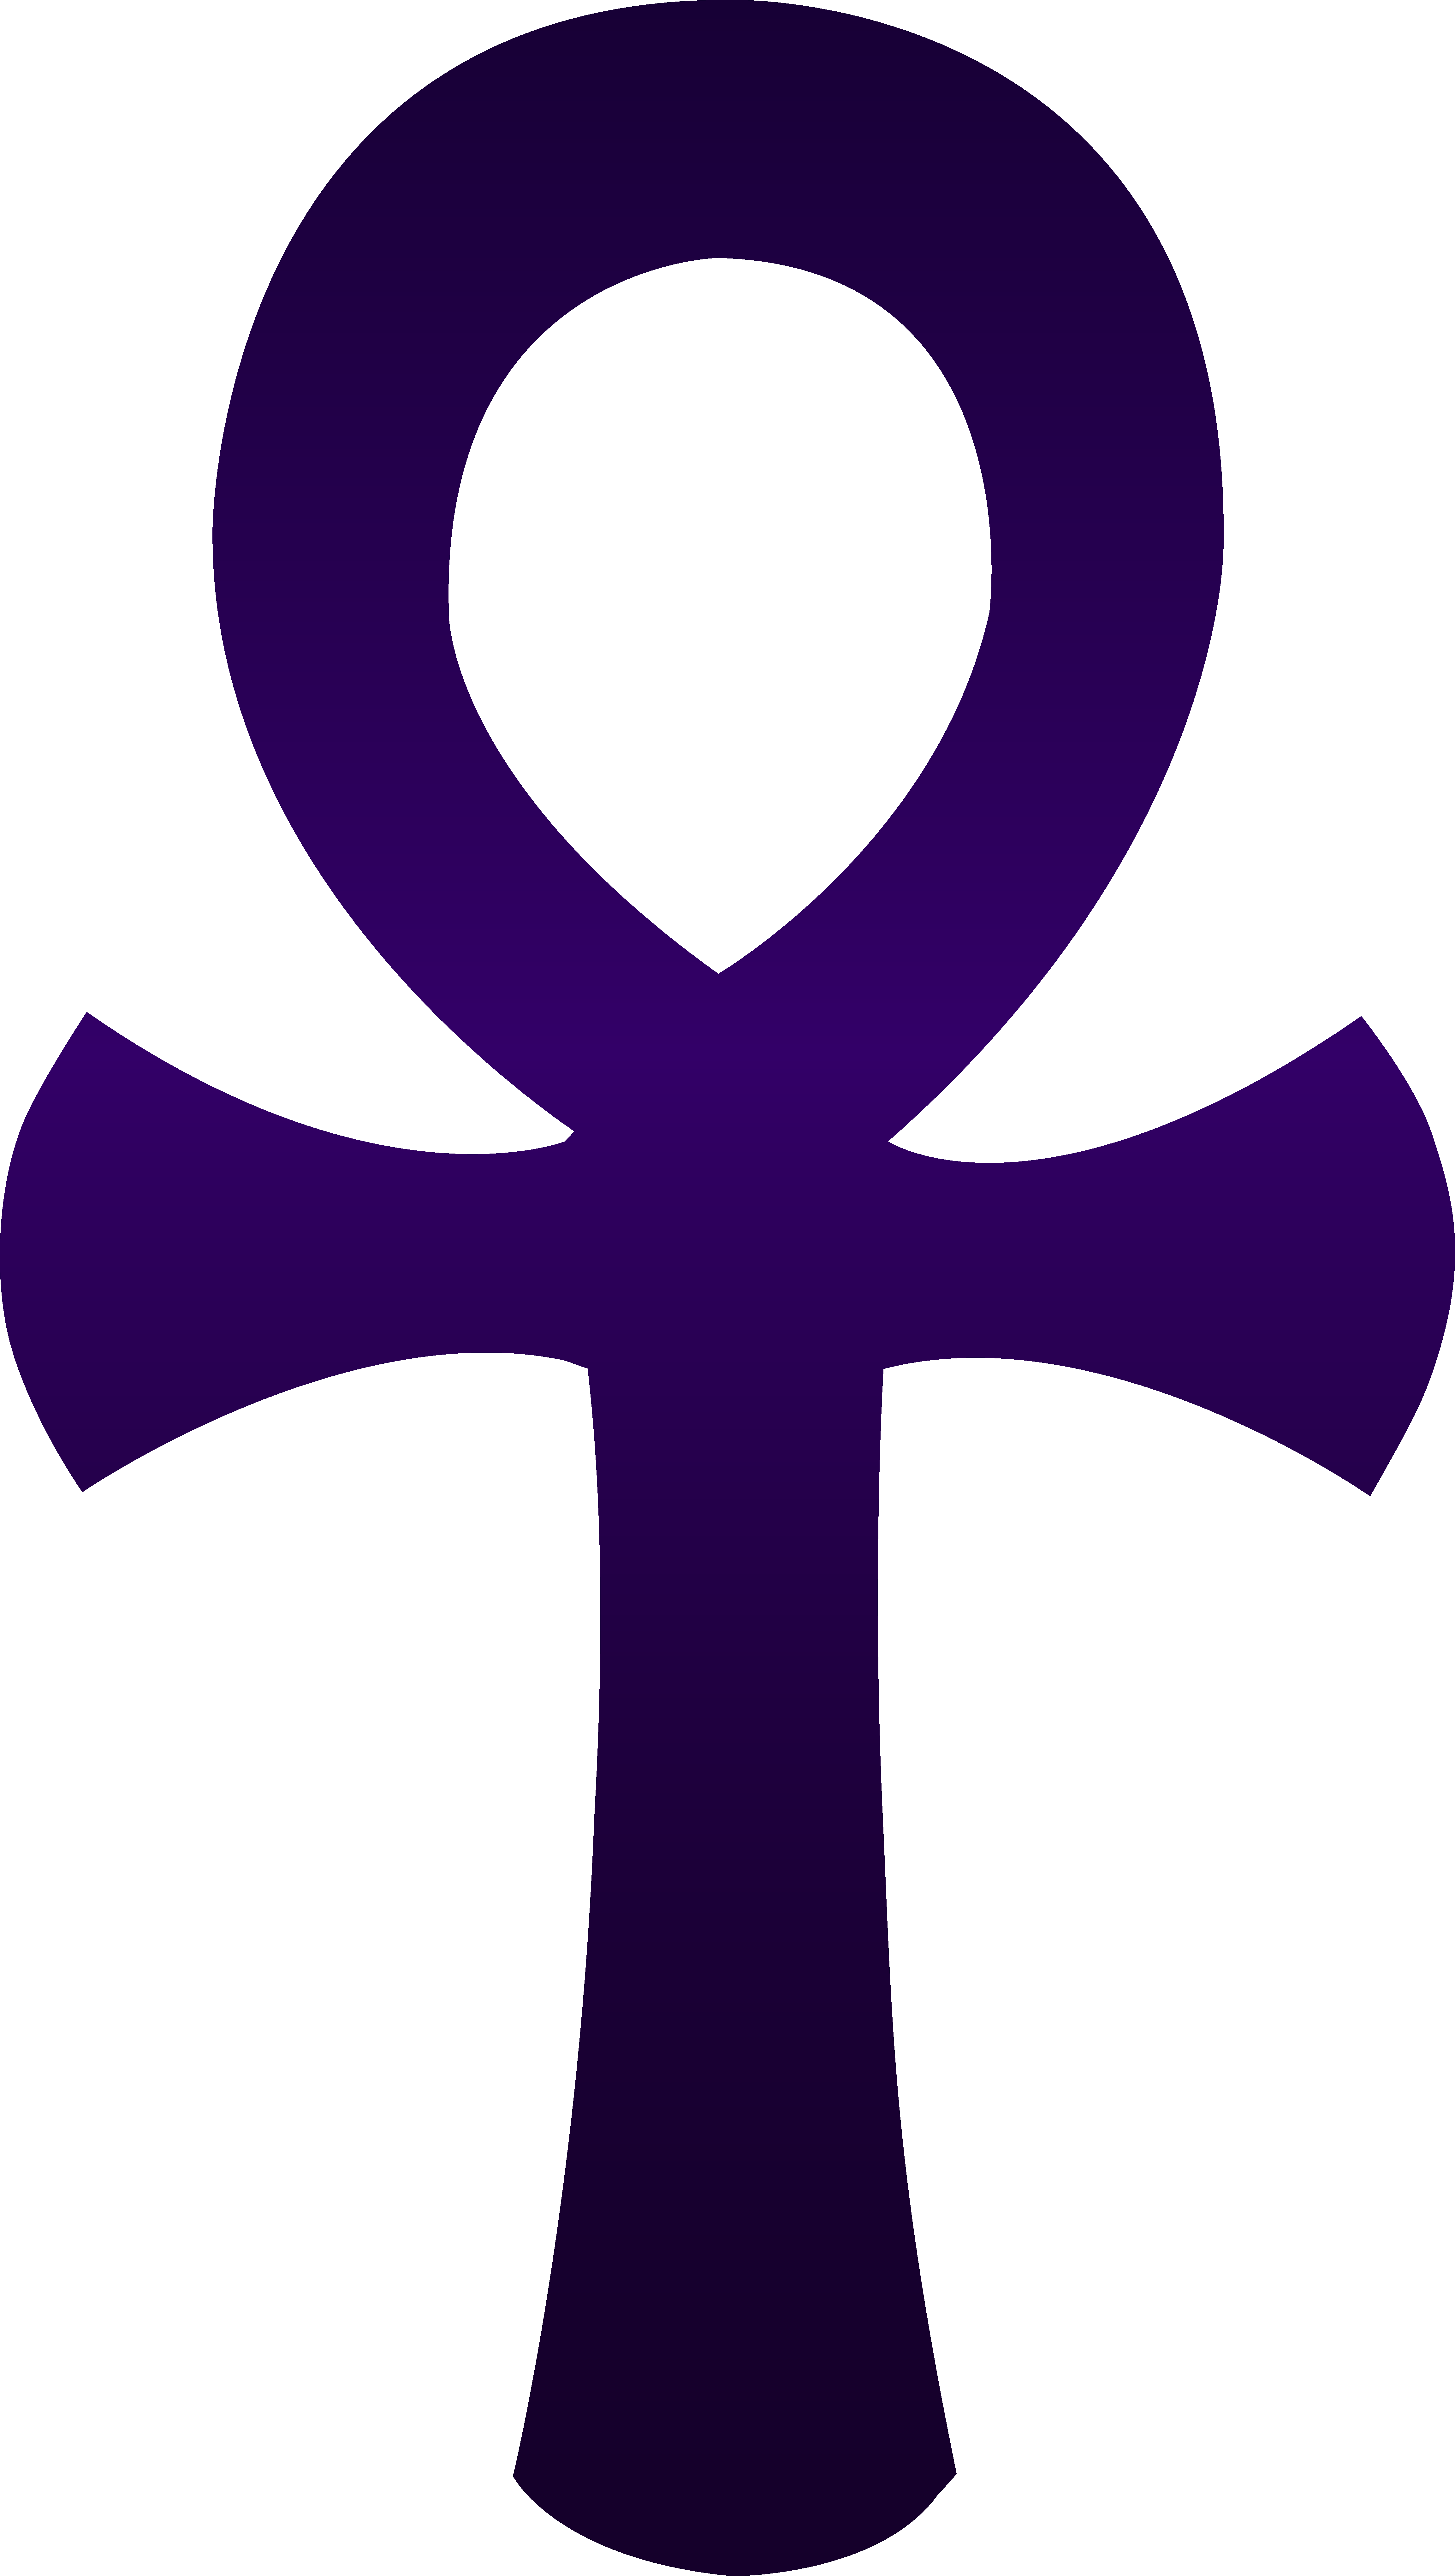 Meaning of the Ankh, an Ancient Egyptian Symbol  |Ankh Eygpt Art